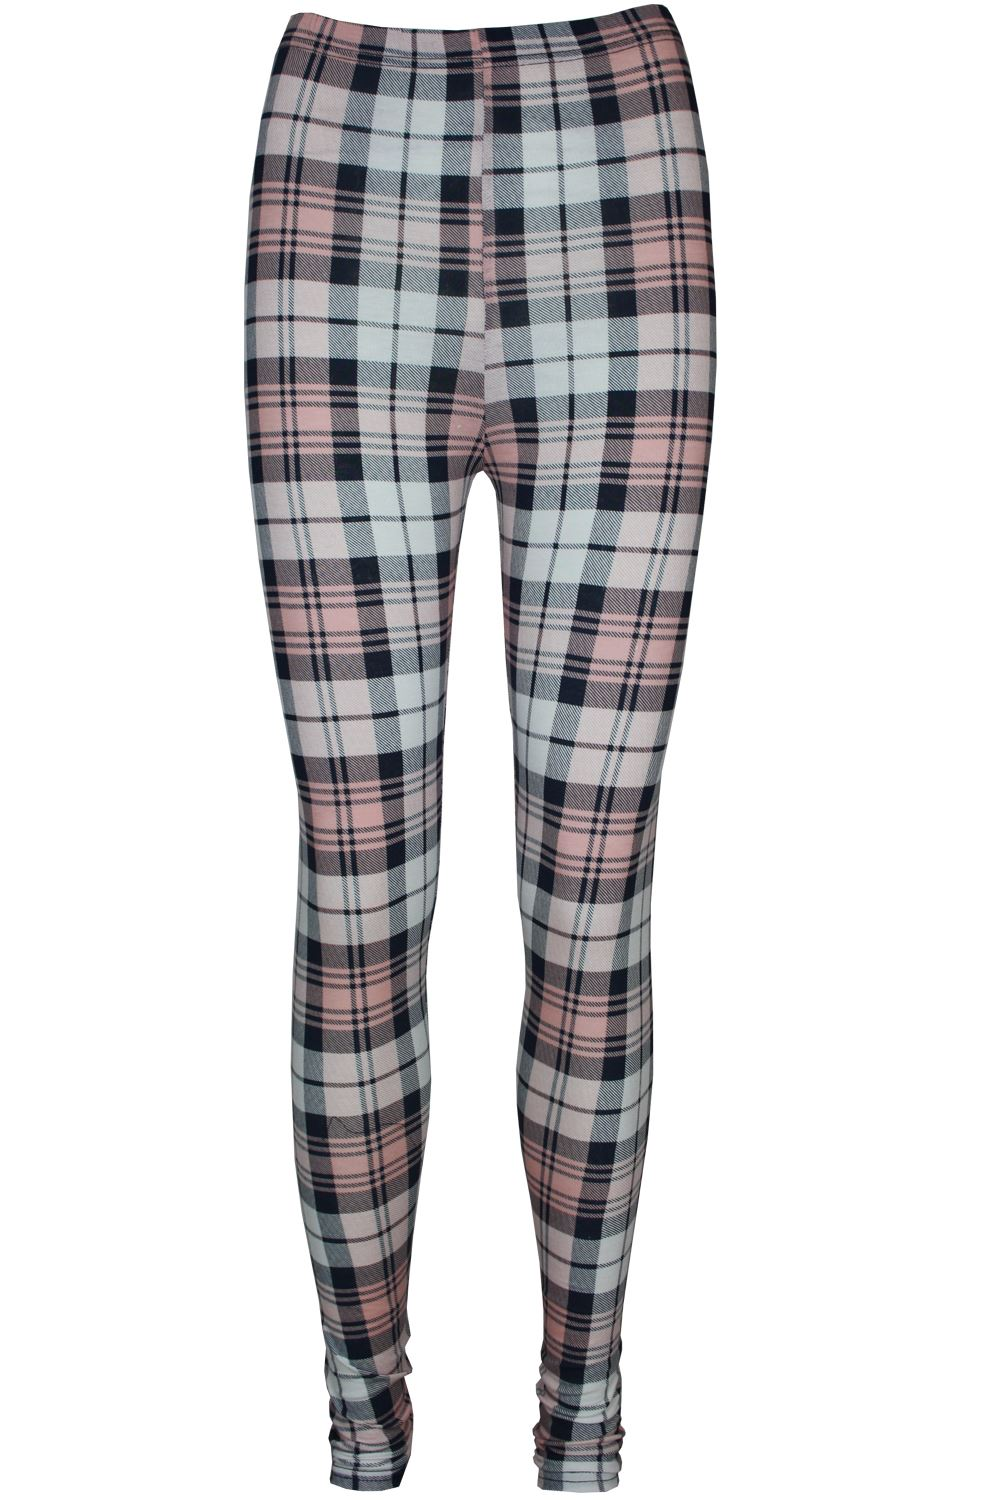 blog for Print PANTS Pants Leggings Women Sexy Leggings Plaid Sexy Tartan Clothing Yoga PLAID Purple YOGA Leggings Sexy Womens Womens Stay up to date on all that is happening at In Touch, and read daily posts on topics that matter to you.